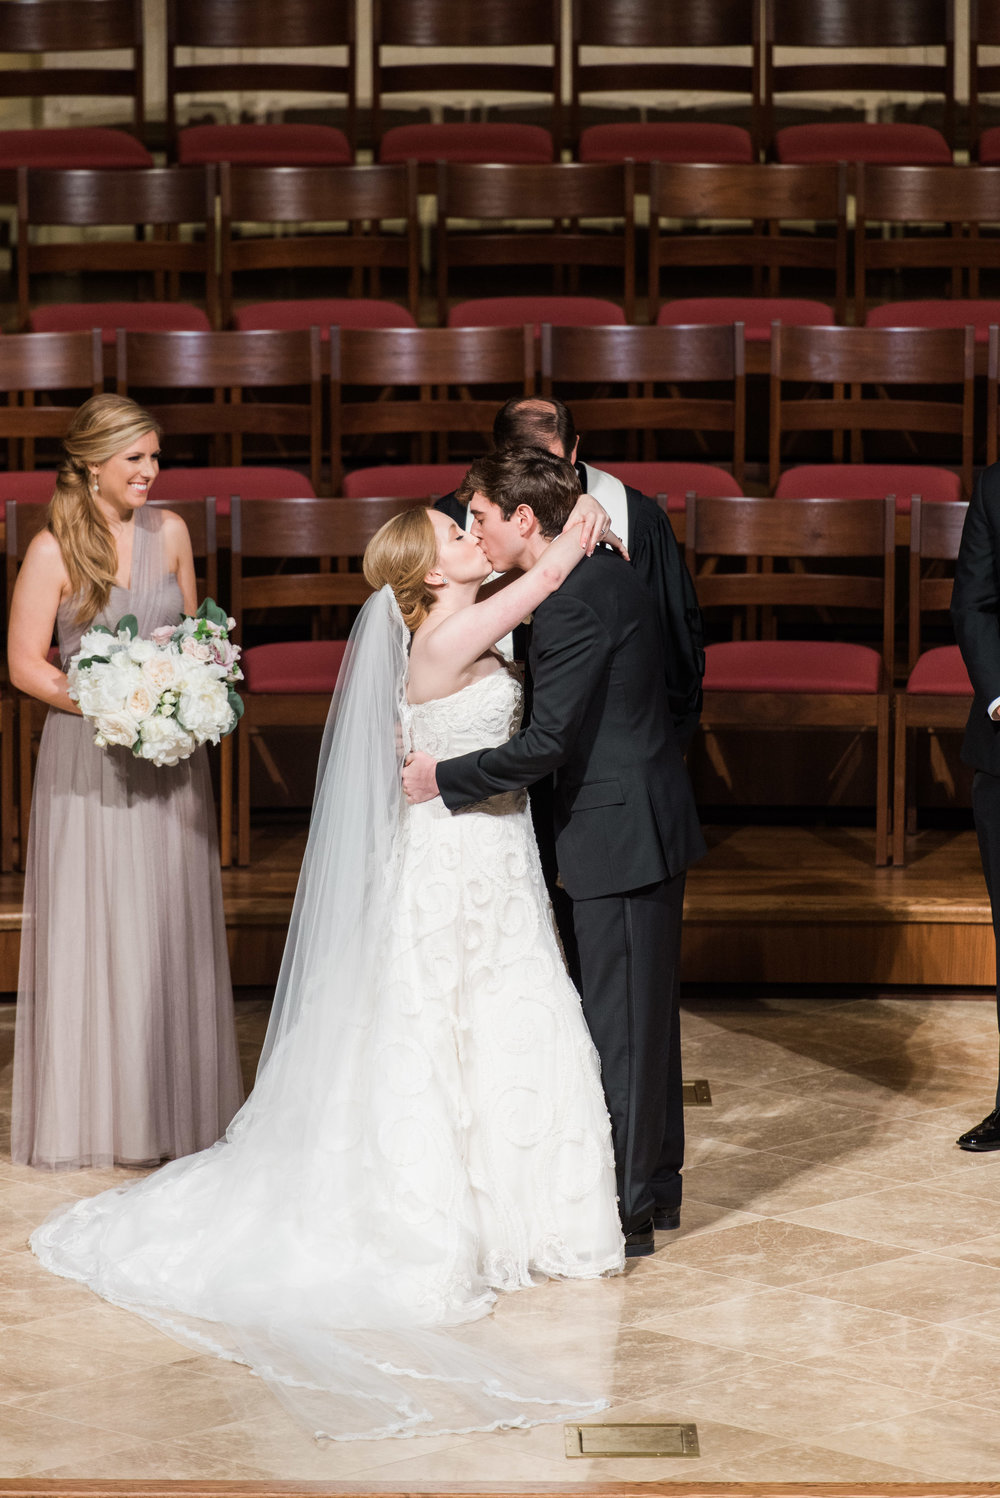 Fine-Art-Film-Houston-Wedding-Photographer-Best-Top-Luxury-Texas-Austin-Dallas-Destination-Dana-Fernandez-Photography-River-Oaks-Country-Club-South-Main-Baptist-Ceremony-Reception-Wedding-37.jpg